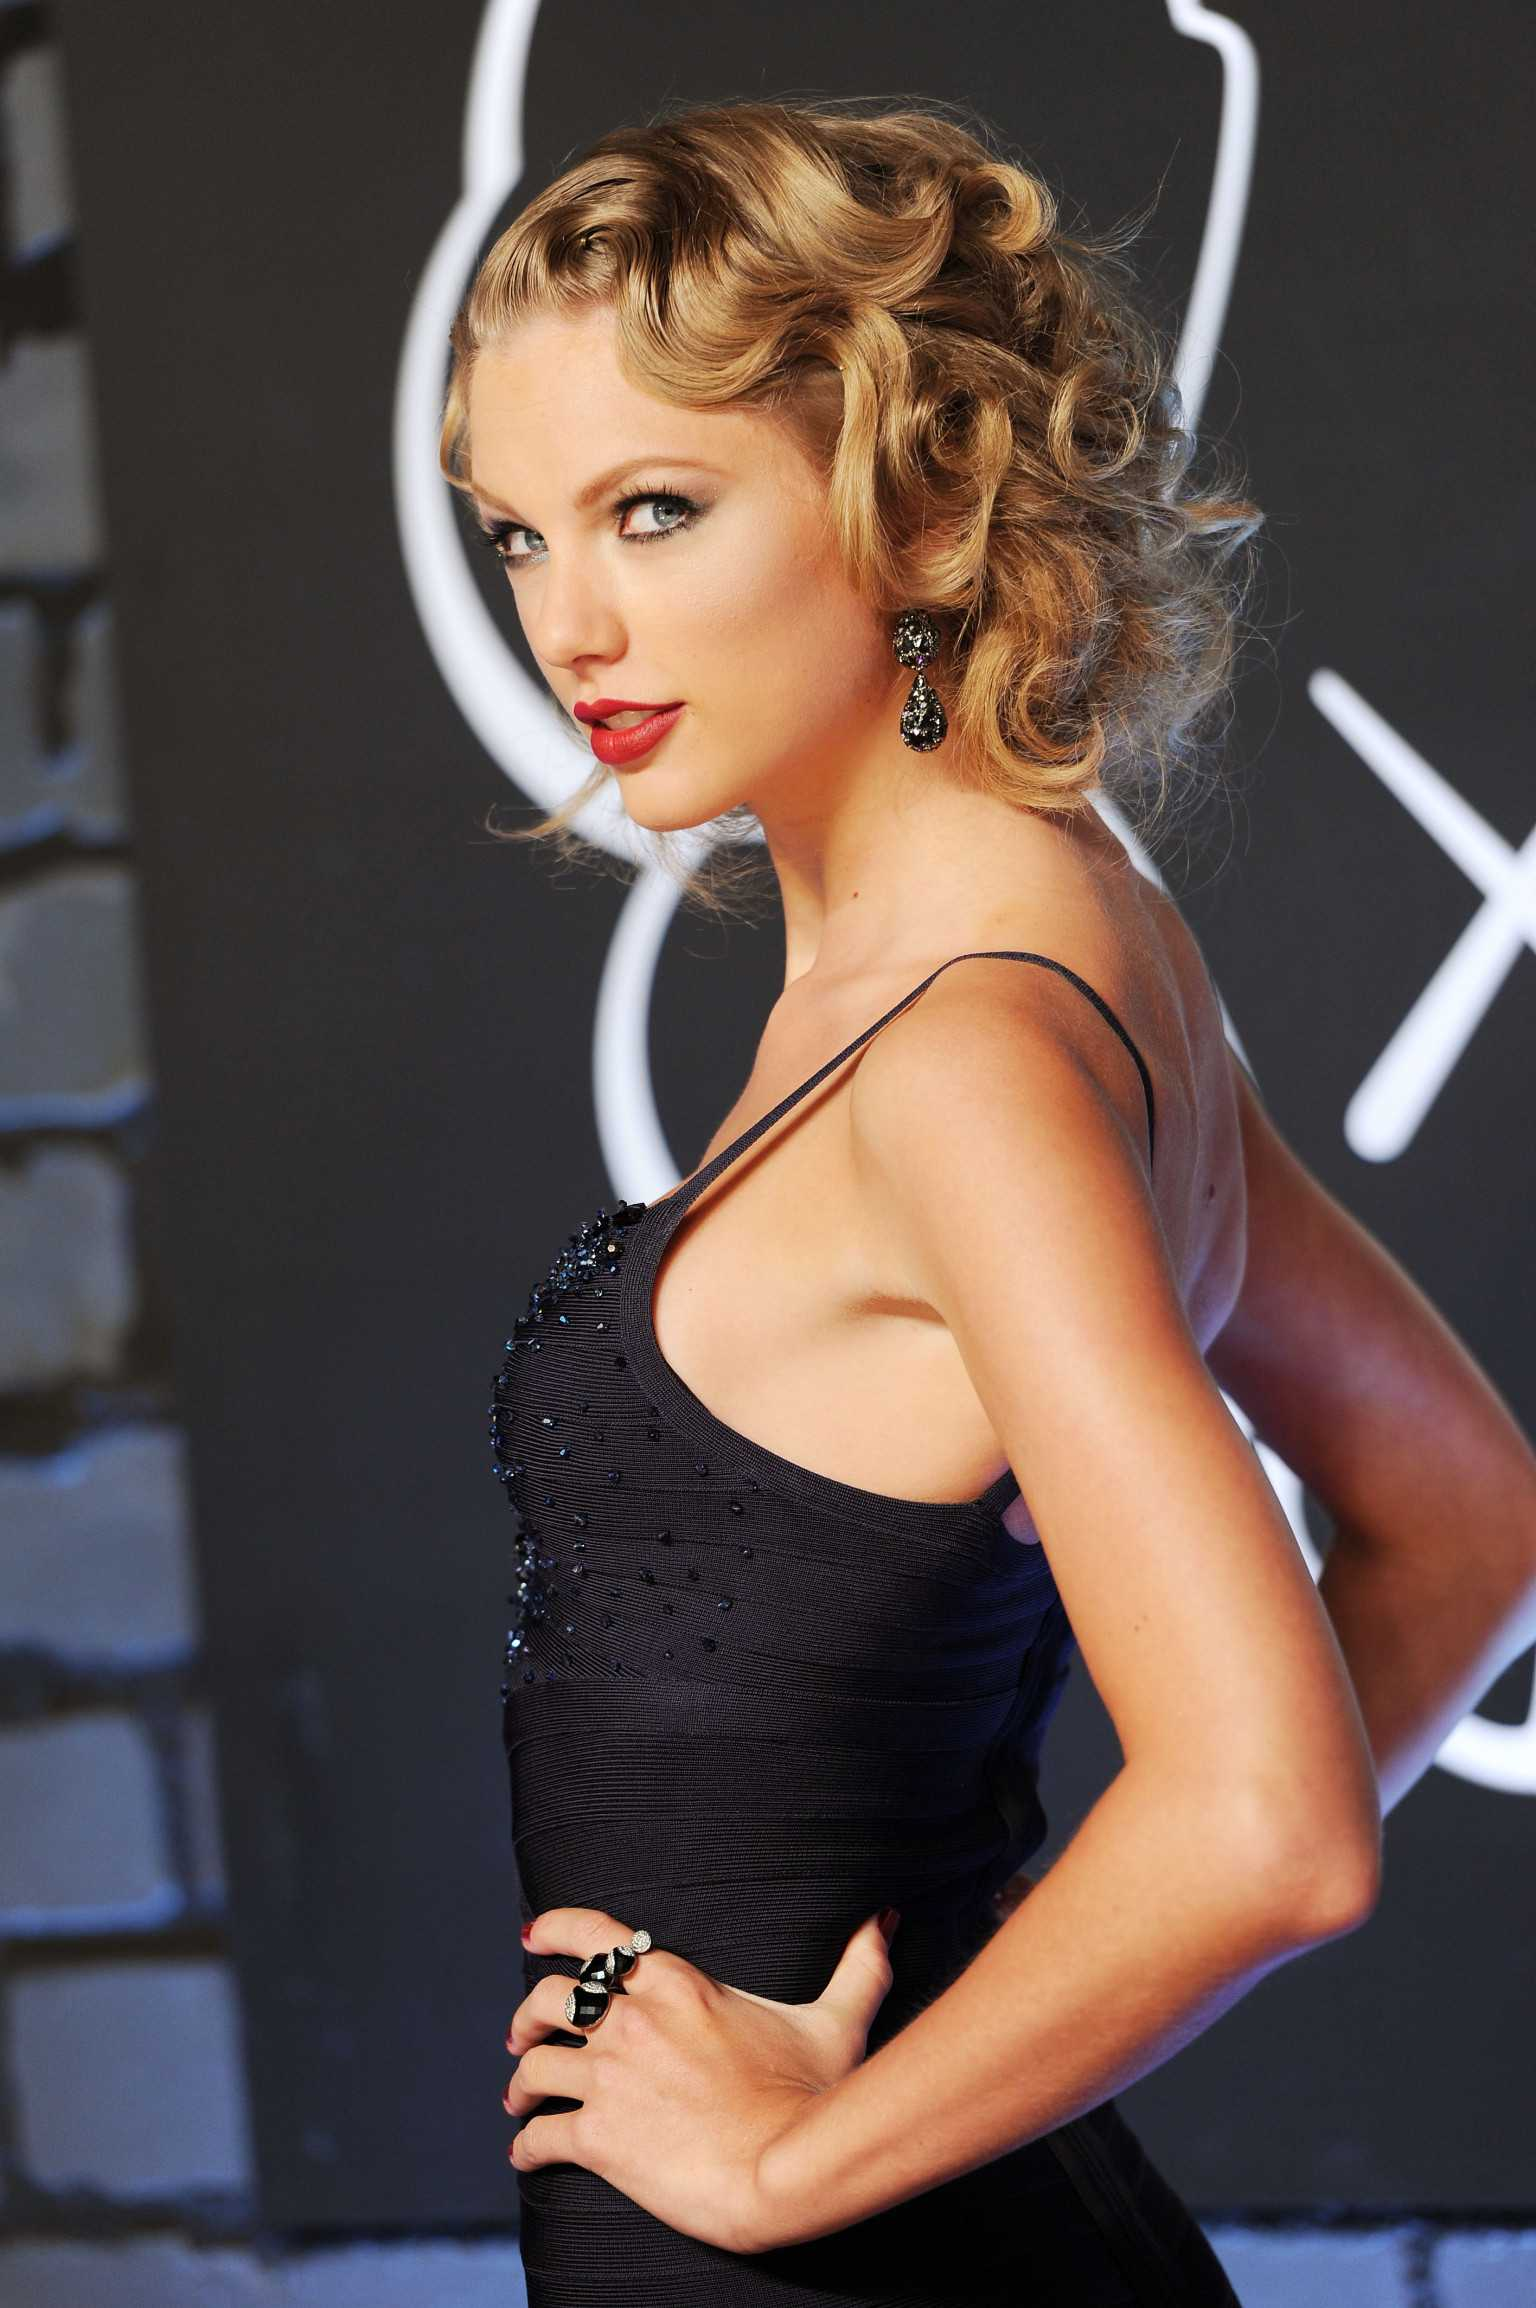 65 Taylor Swift Sexy Pictures Are Really Epic - GEEKS ON COFFEE